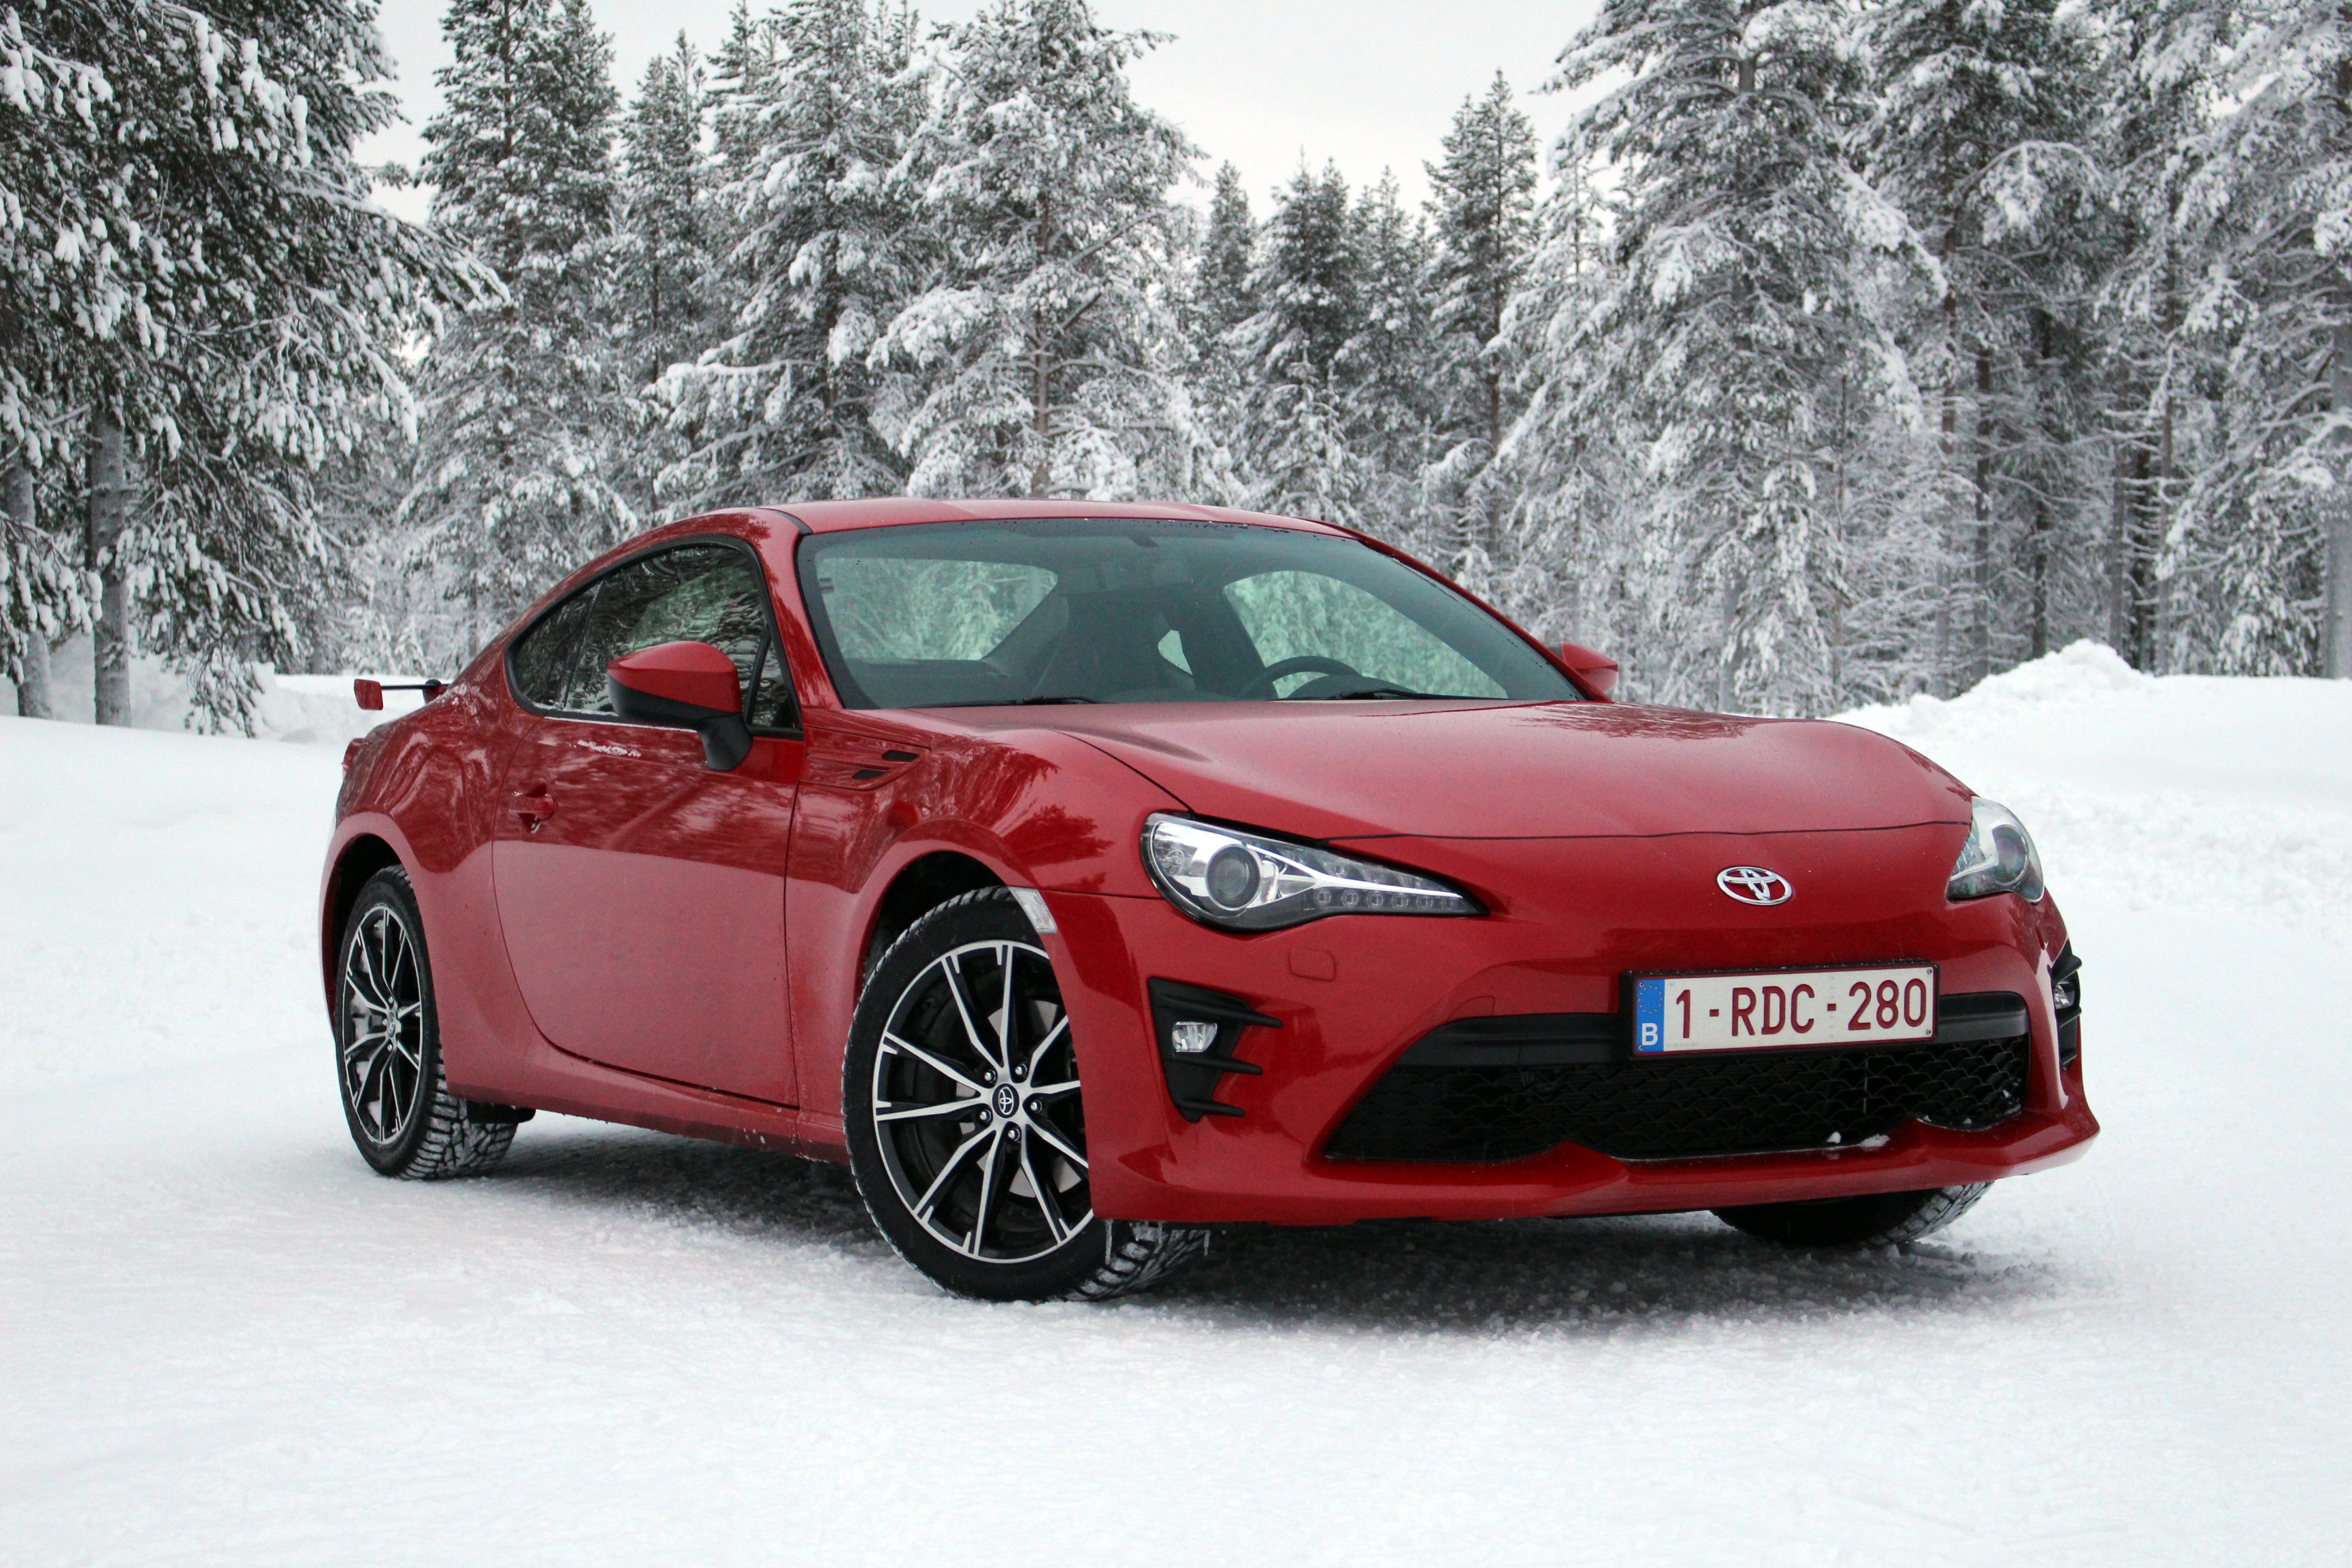 toyota gt 86 prix reunion car design today. Black Bedroom Furniture Sets. Home Design Ideas